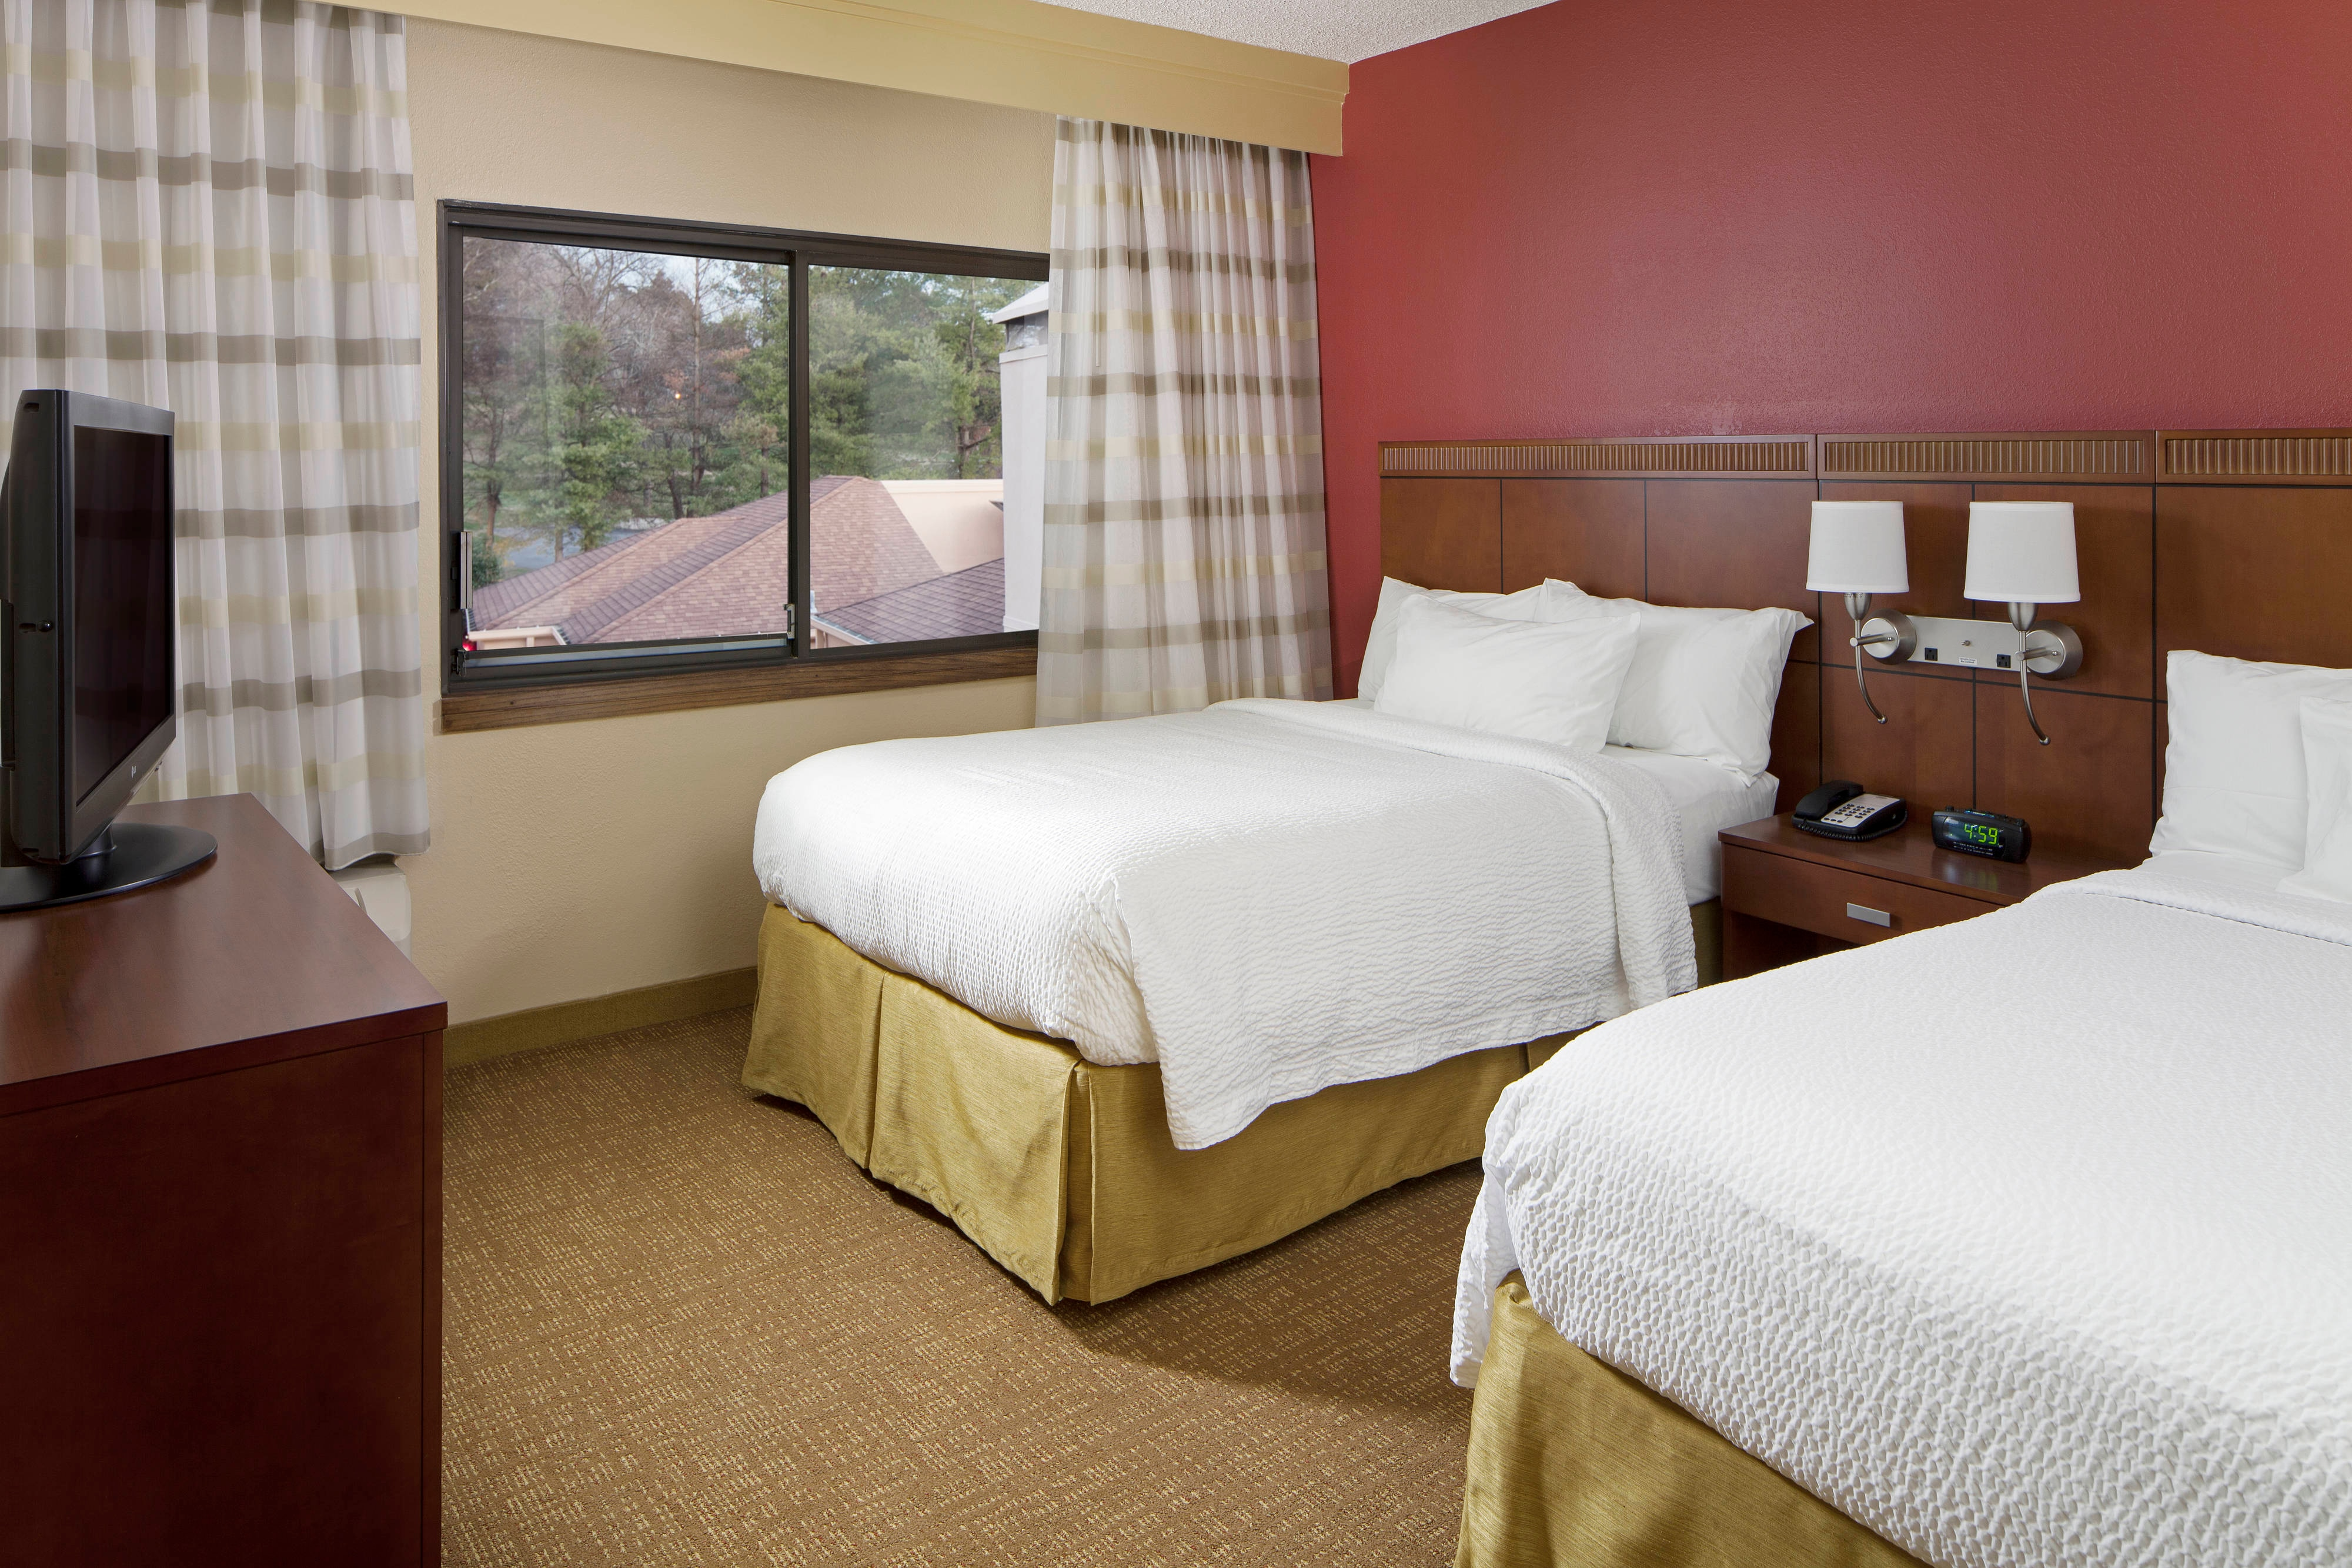 Nashville airport hotel rooms and suites courtyard nashville airport for 2 bedroom hotel suites nashville tn